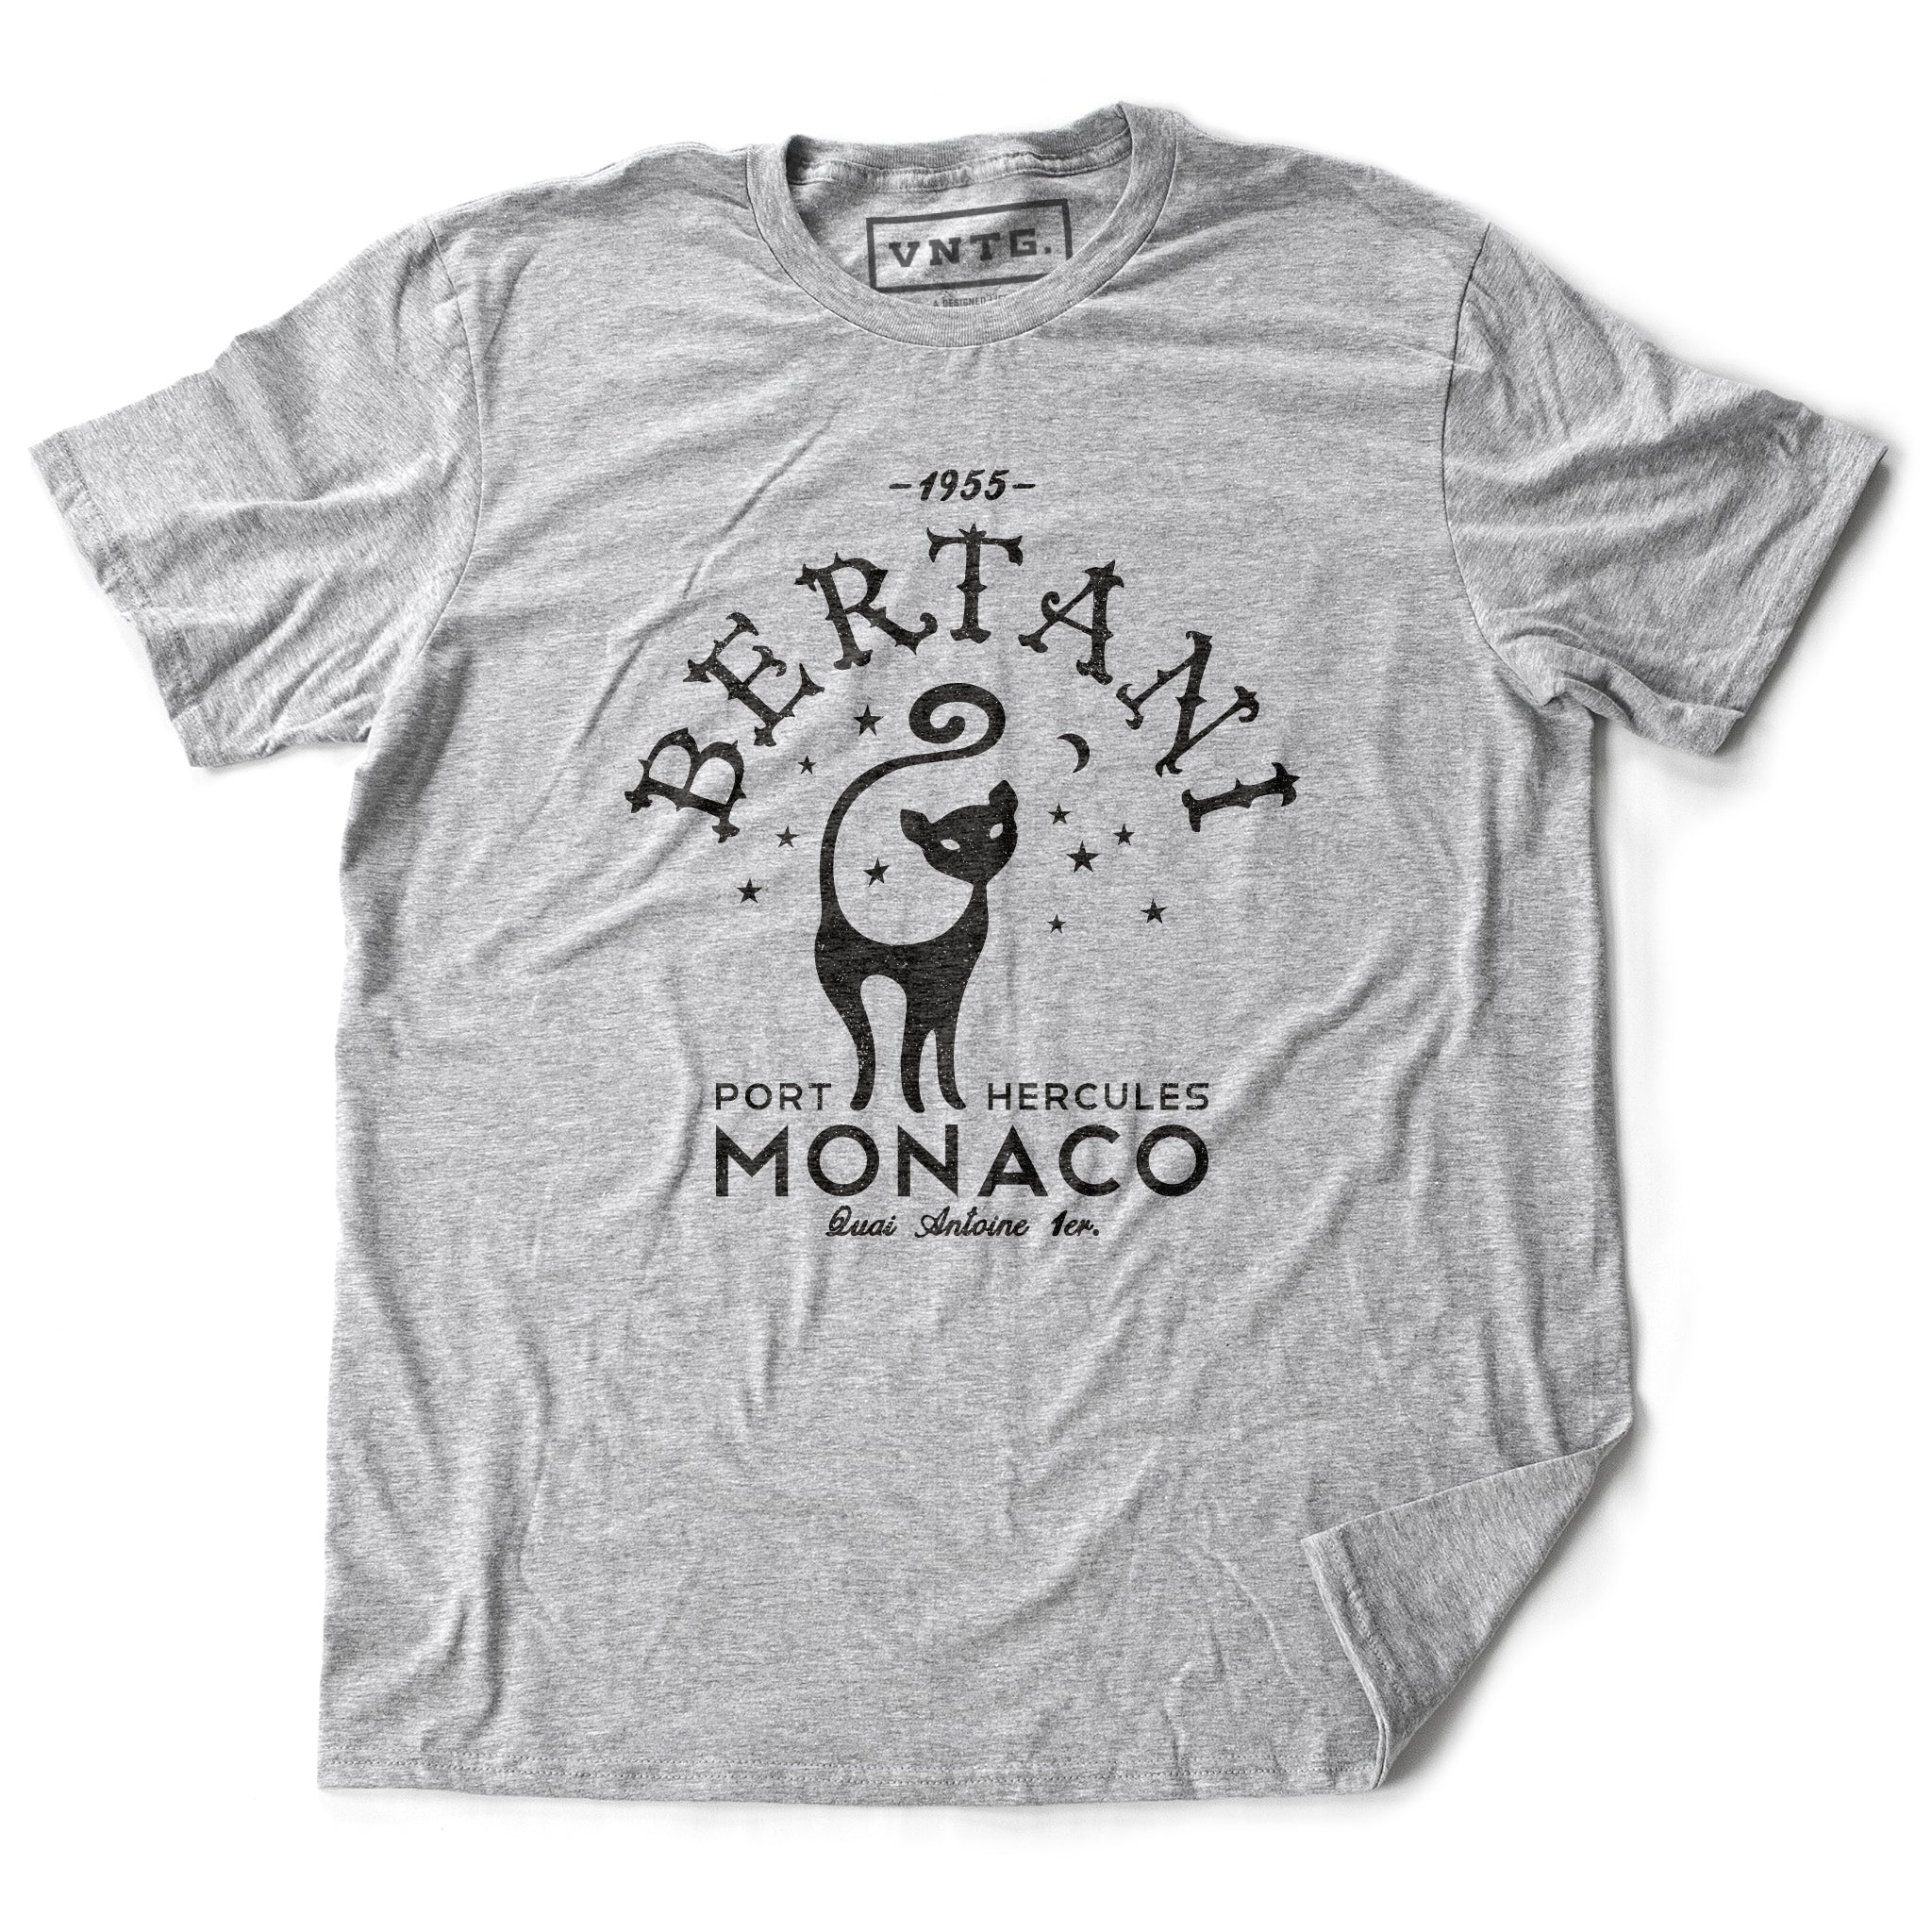 A vintage-look, retro t-shirt that was inspired by the Alfred Hitchcock film To Catch a Thief, and is a tribute to the restaurant Bertani owned by the friend of Cary Grant's character in the film. It features old worlds typography around the image of a cat, meant to symbolize 'John Robie The Cat'—the infamous cat burglar portrayed by Grant and loved by Grace Kelly. This shirt is elegant in Classic Heather Gray, by fashion brand VNTG., from wolfsaint.net